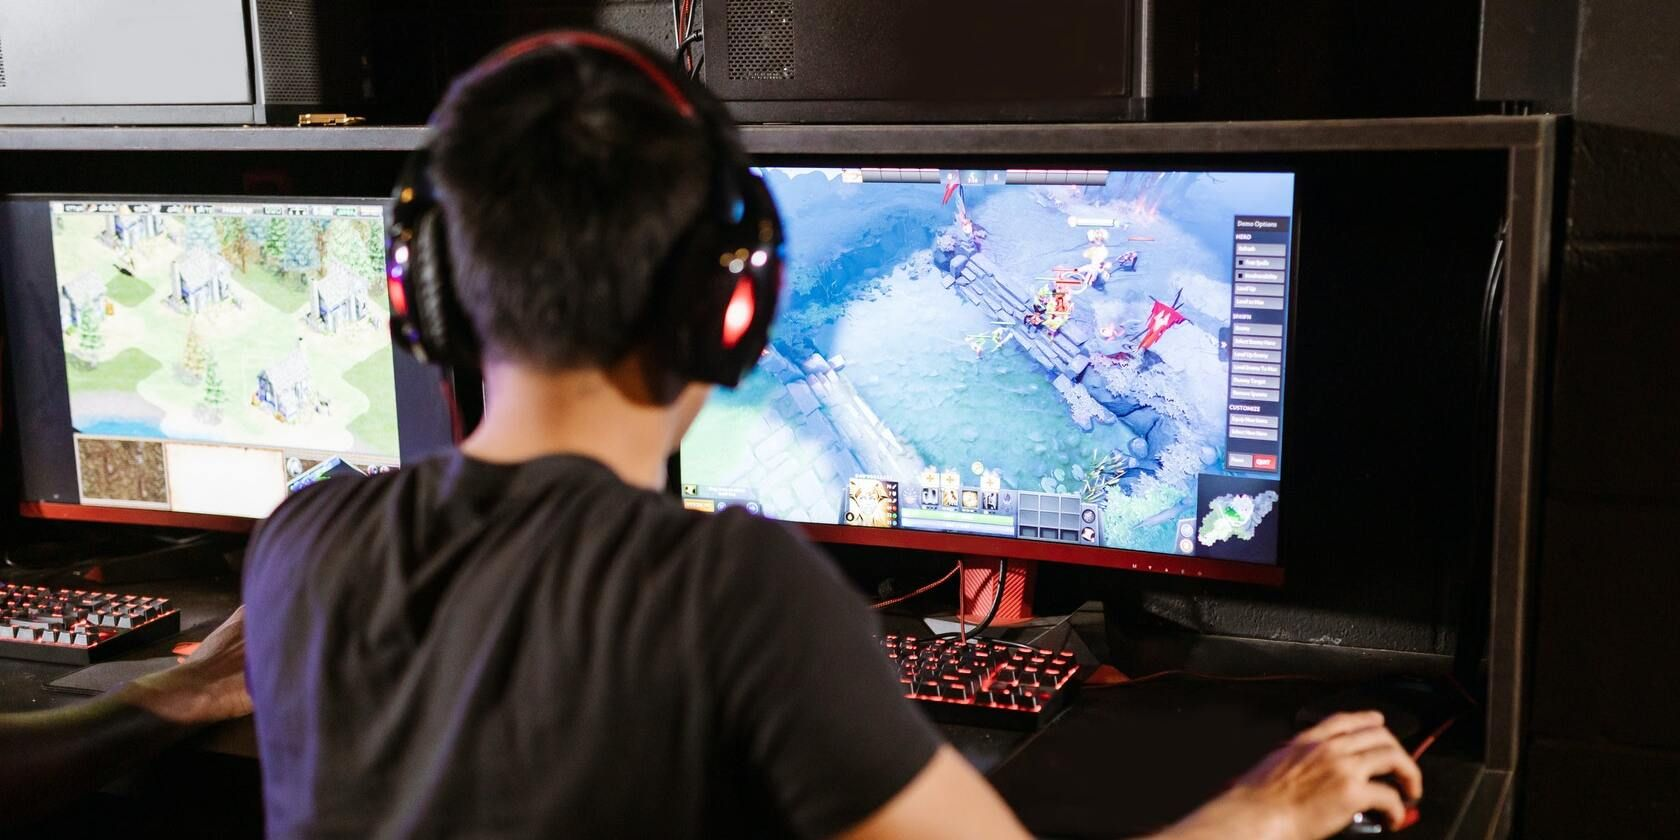 Nvidia RTX 3080 vs. AMD RX 6800 XT: Should You Upgrade Your Gaming PC?